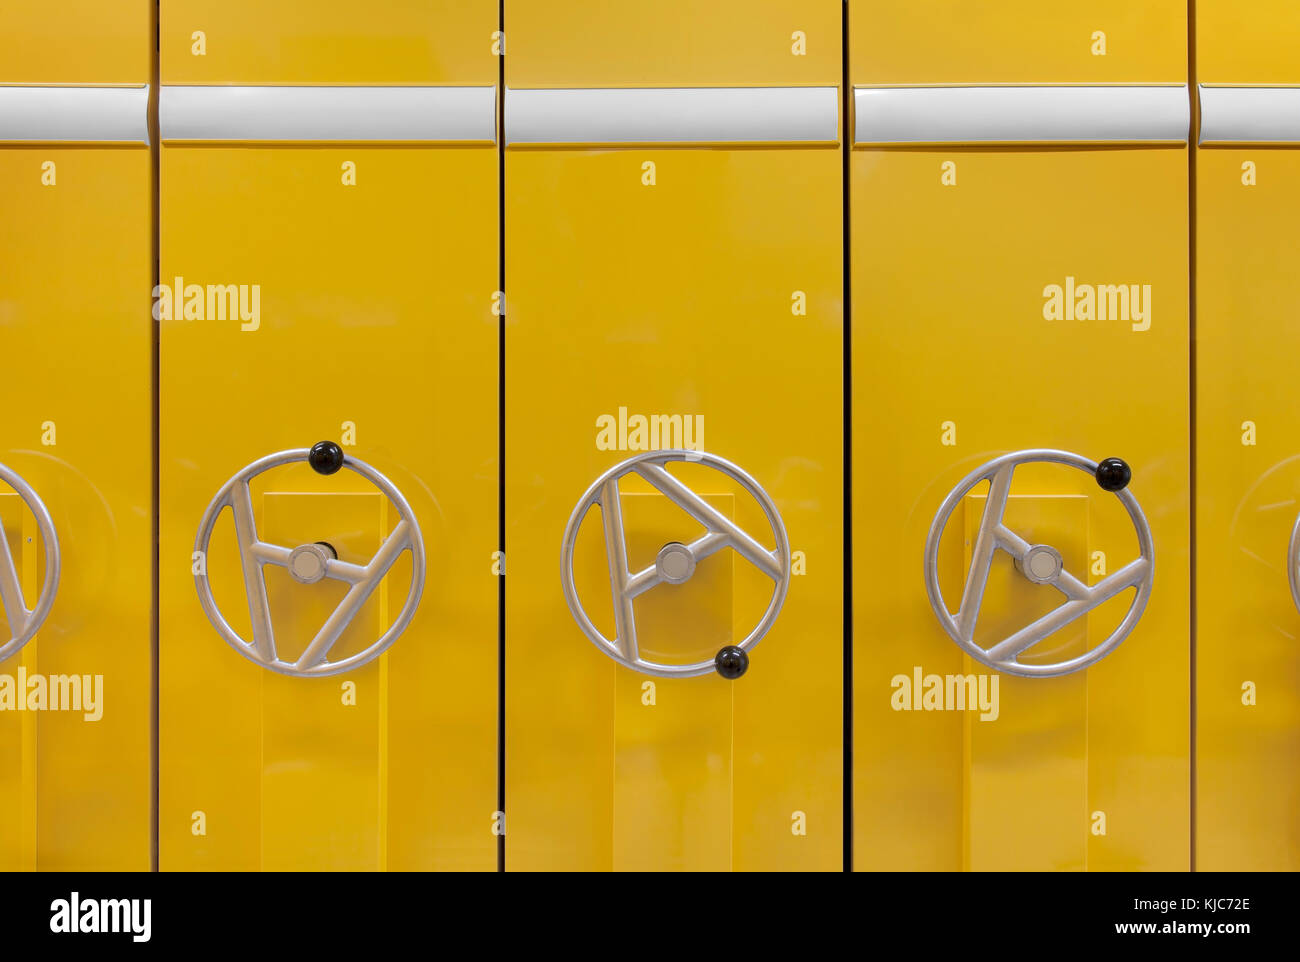 Front view of  files cabinet  in yellow color. White labels and copy space Stock Photo